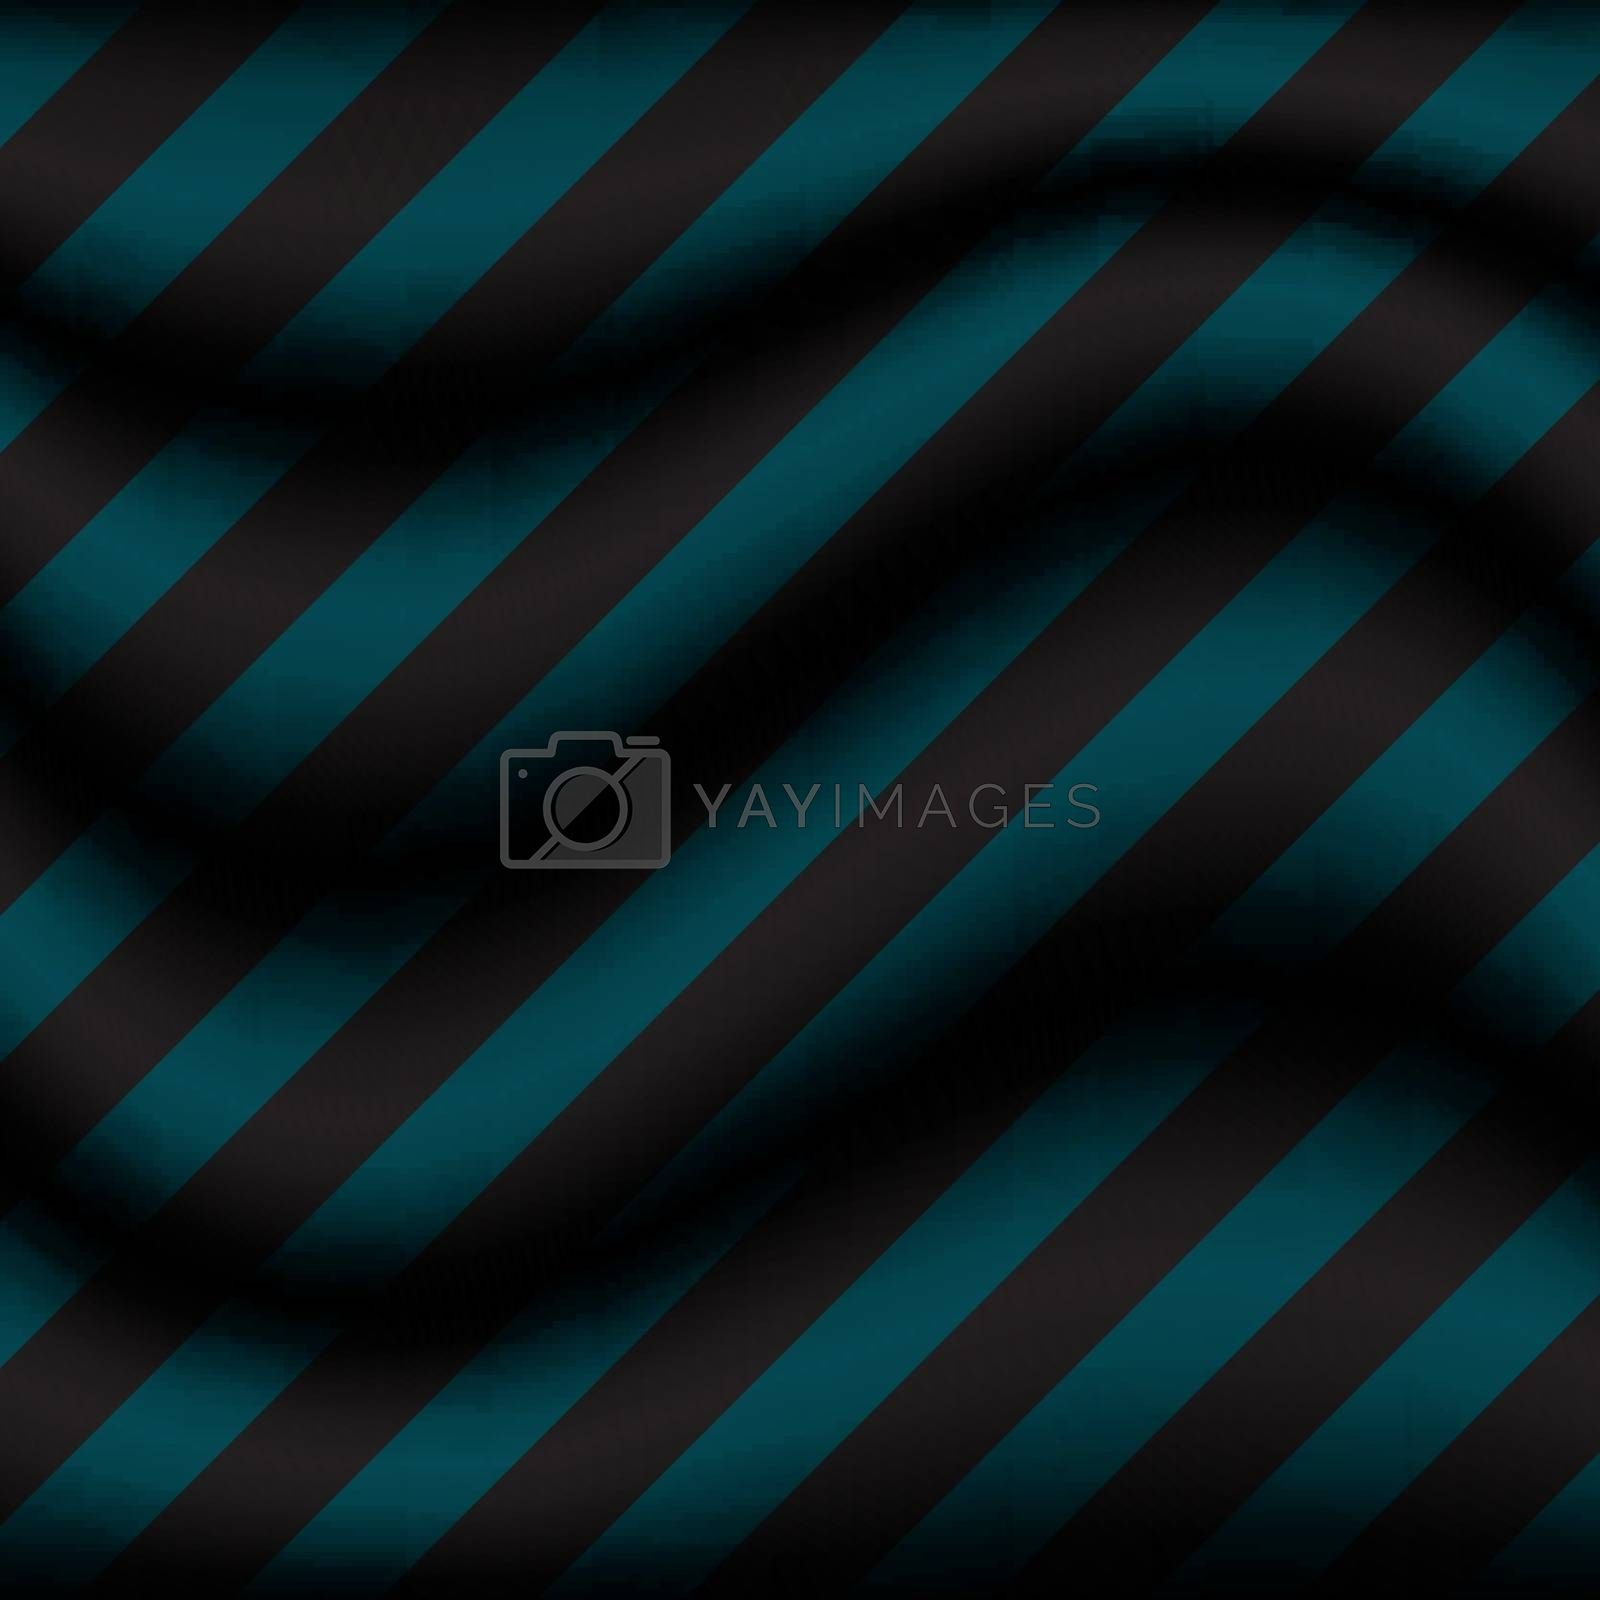 Abstract background striped blue wave with diagonal black stripes pattern. Vector illustration